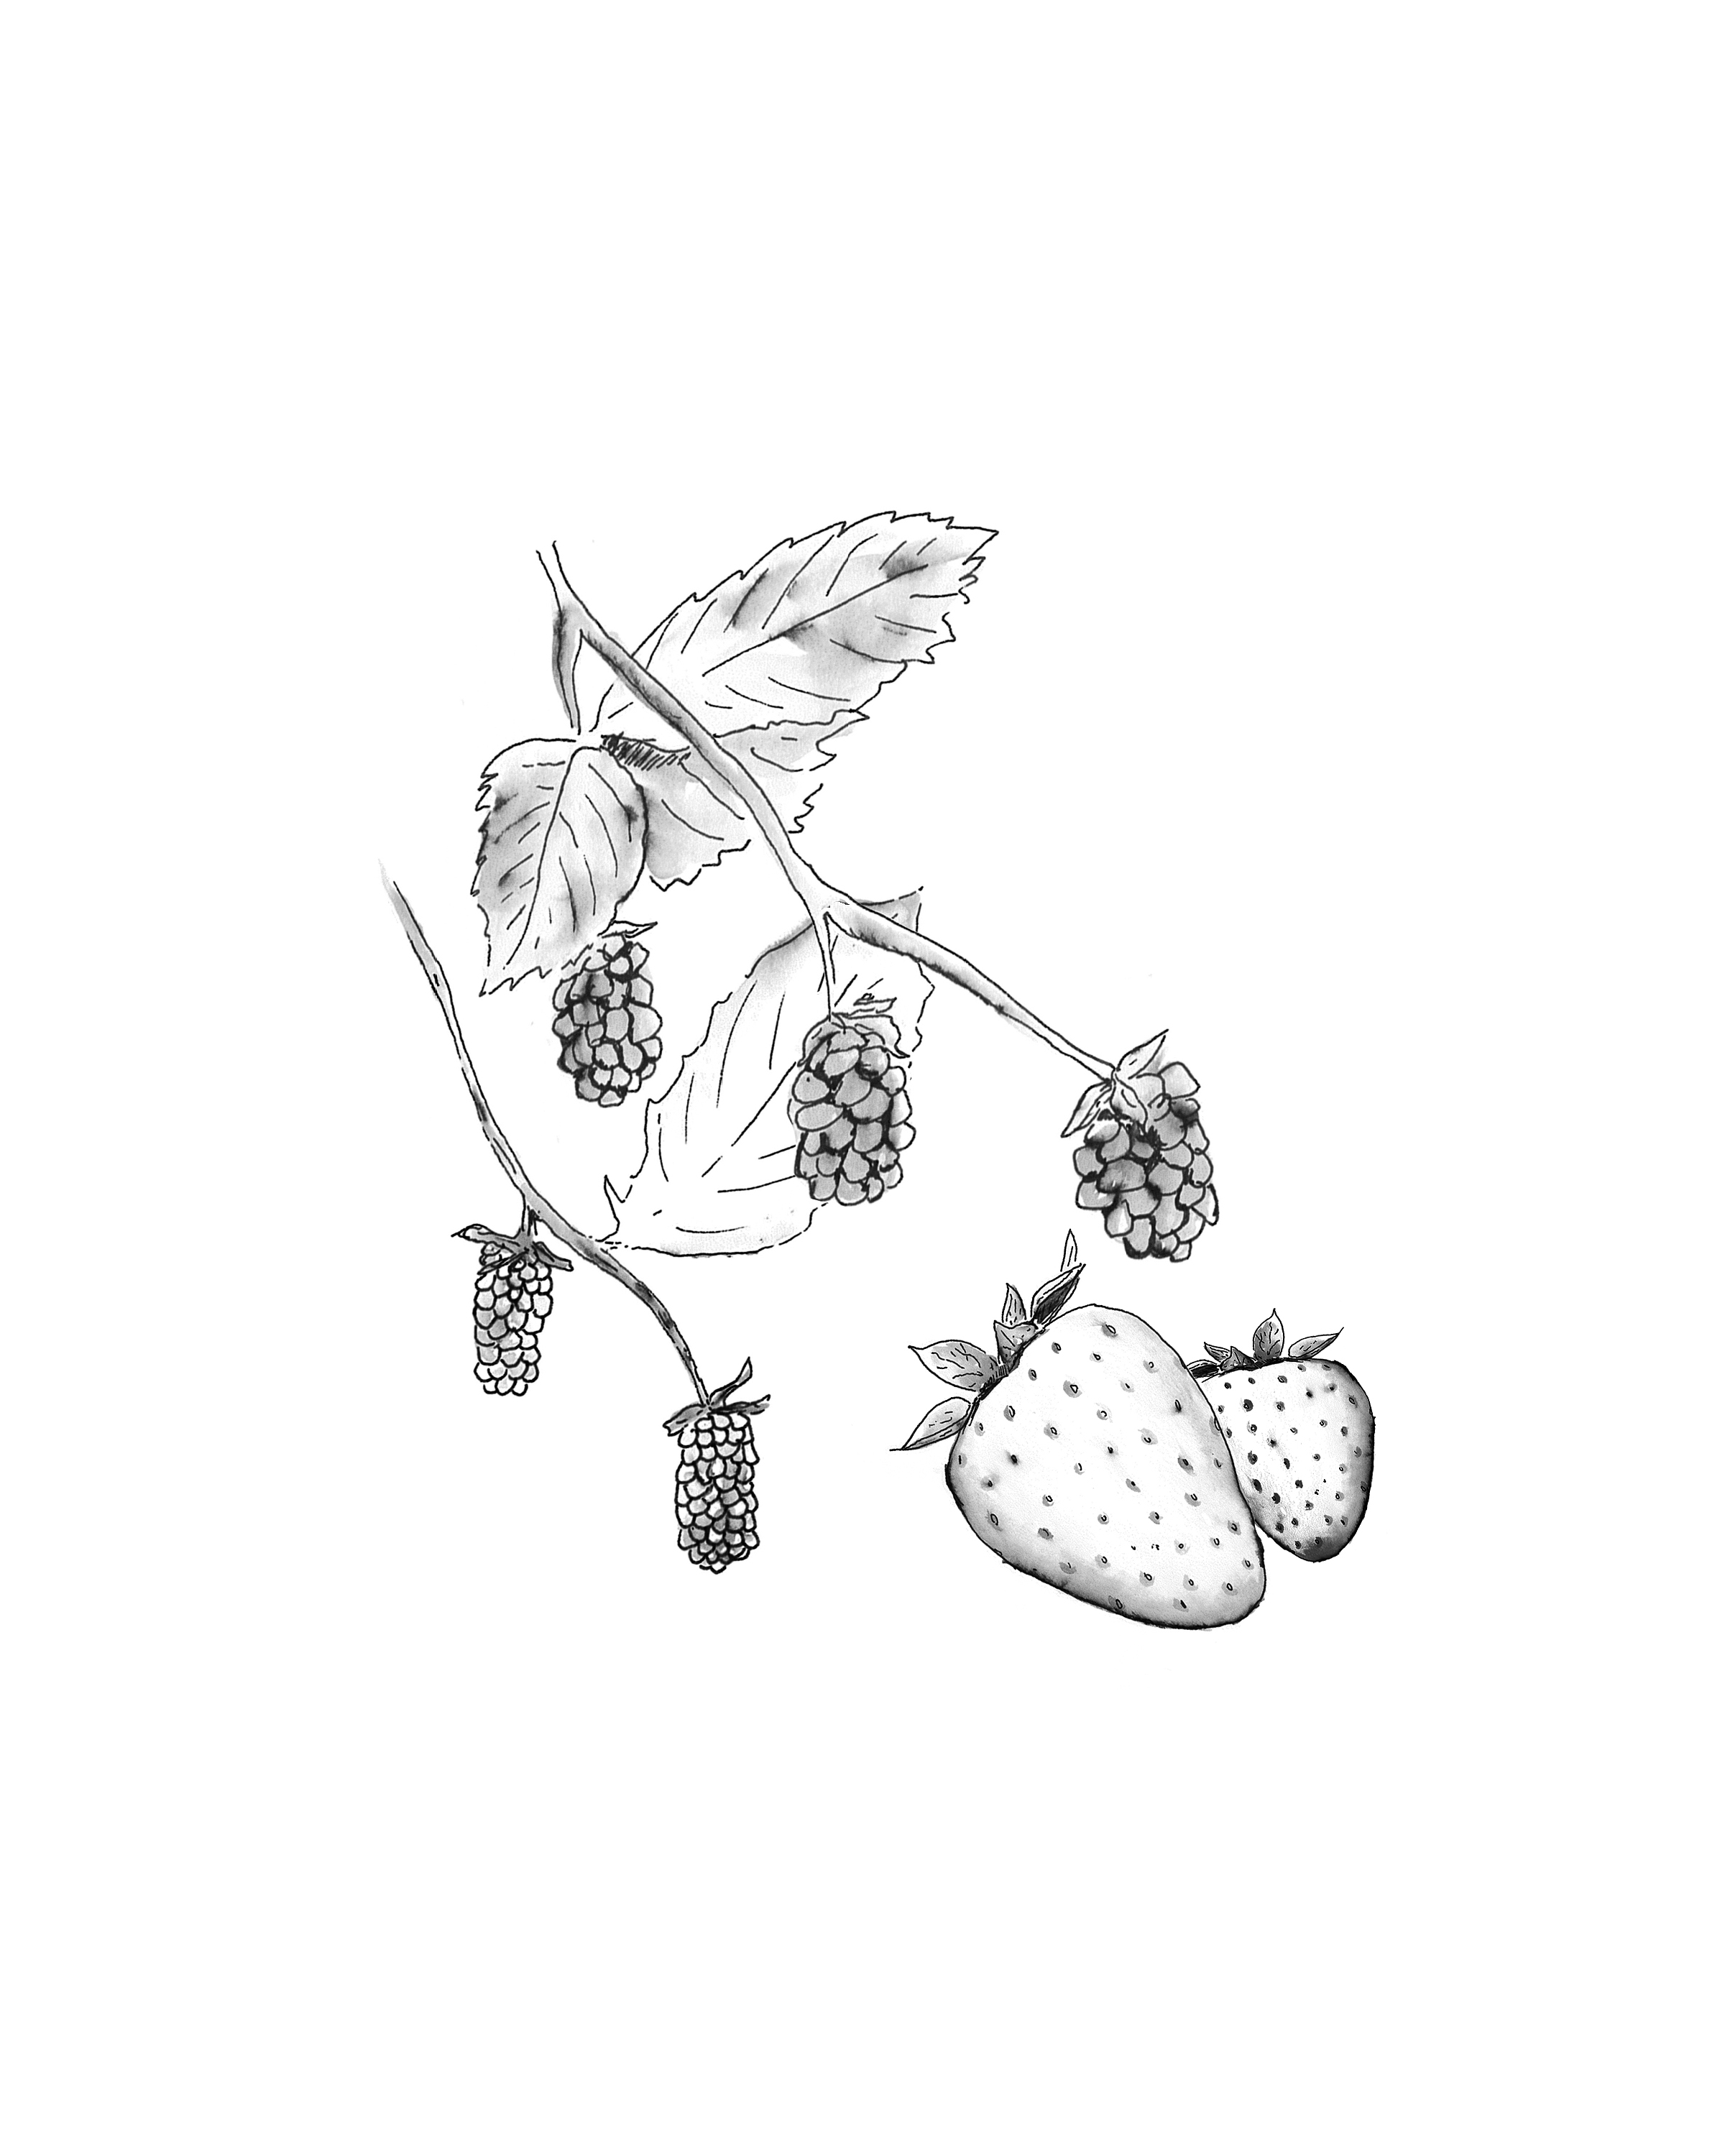 Loganberries, Olallieberries, and Strawberries